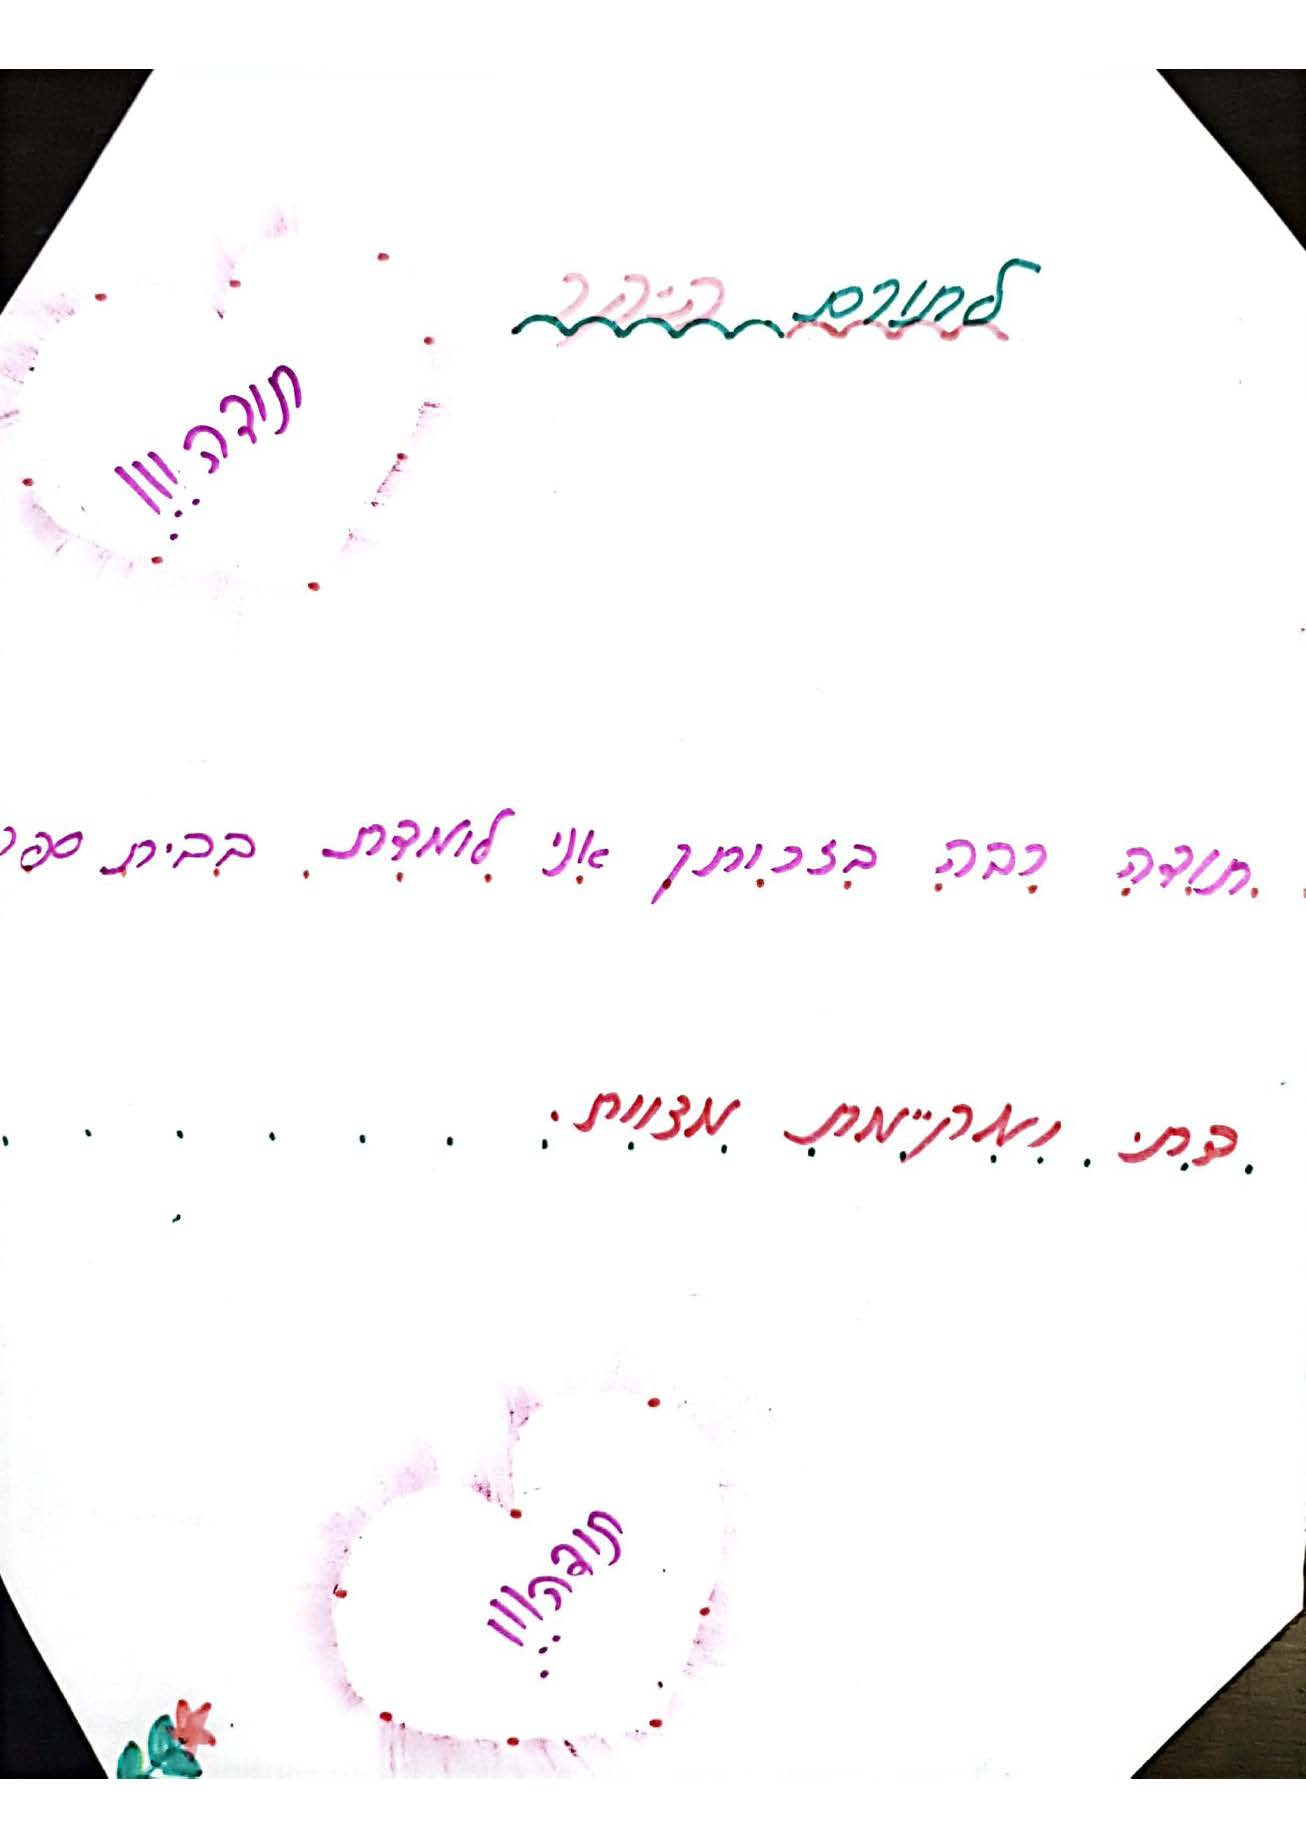 CamScanner 07-28-2021 09.08_Page_16